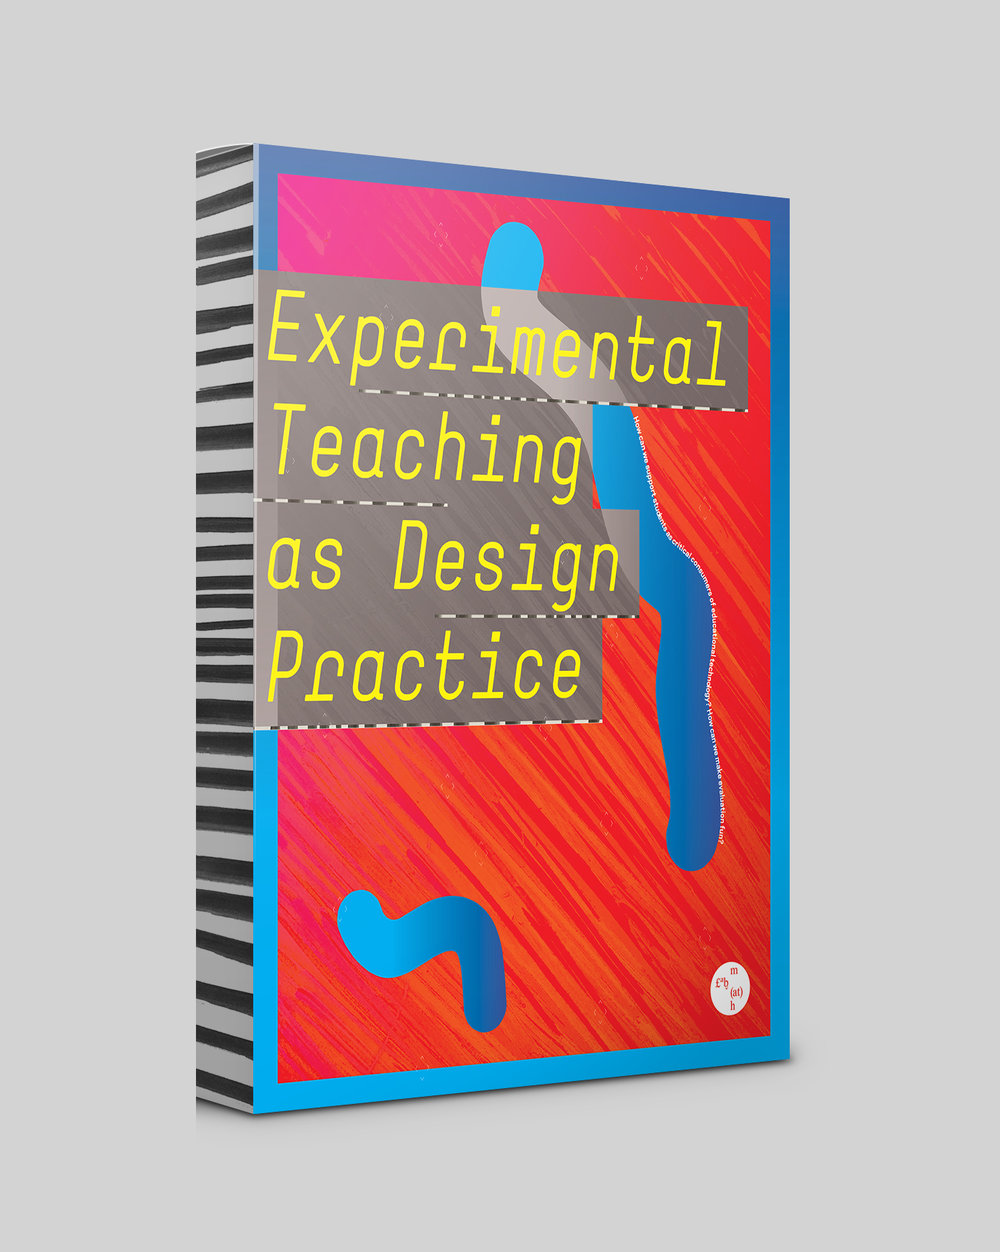 Experimental Teaching as Design Practice